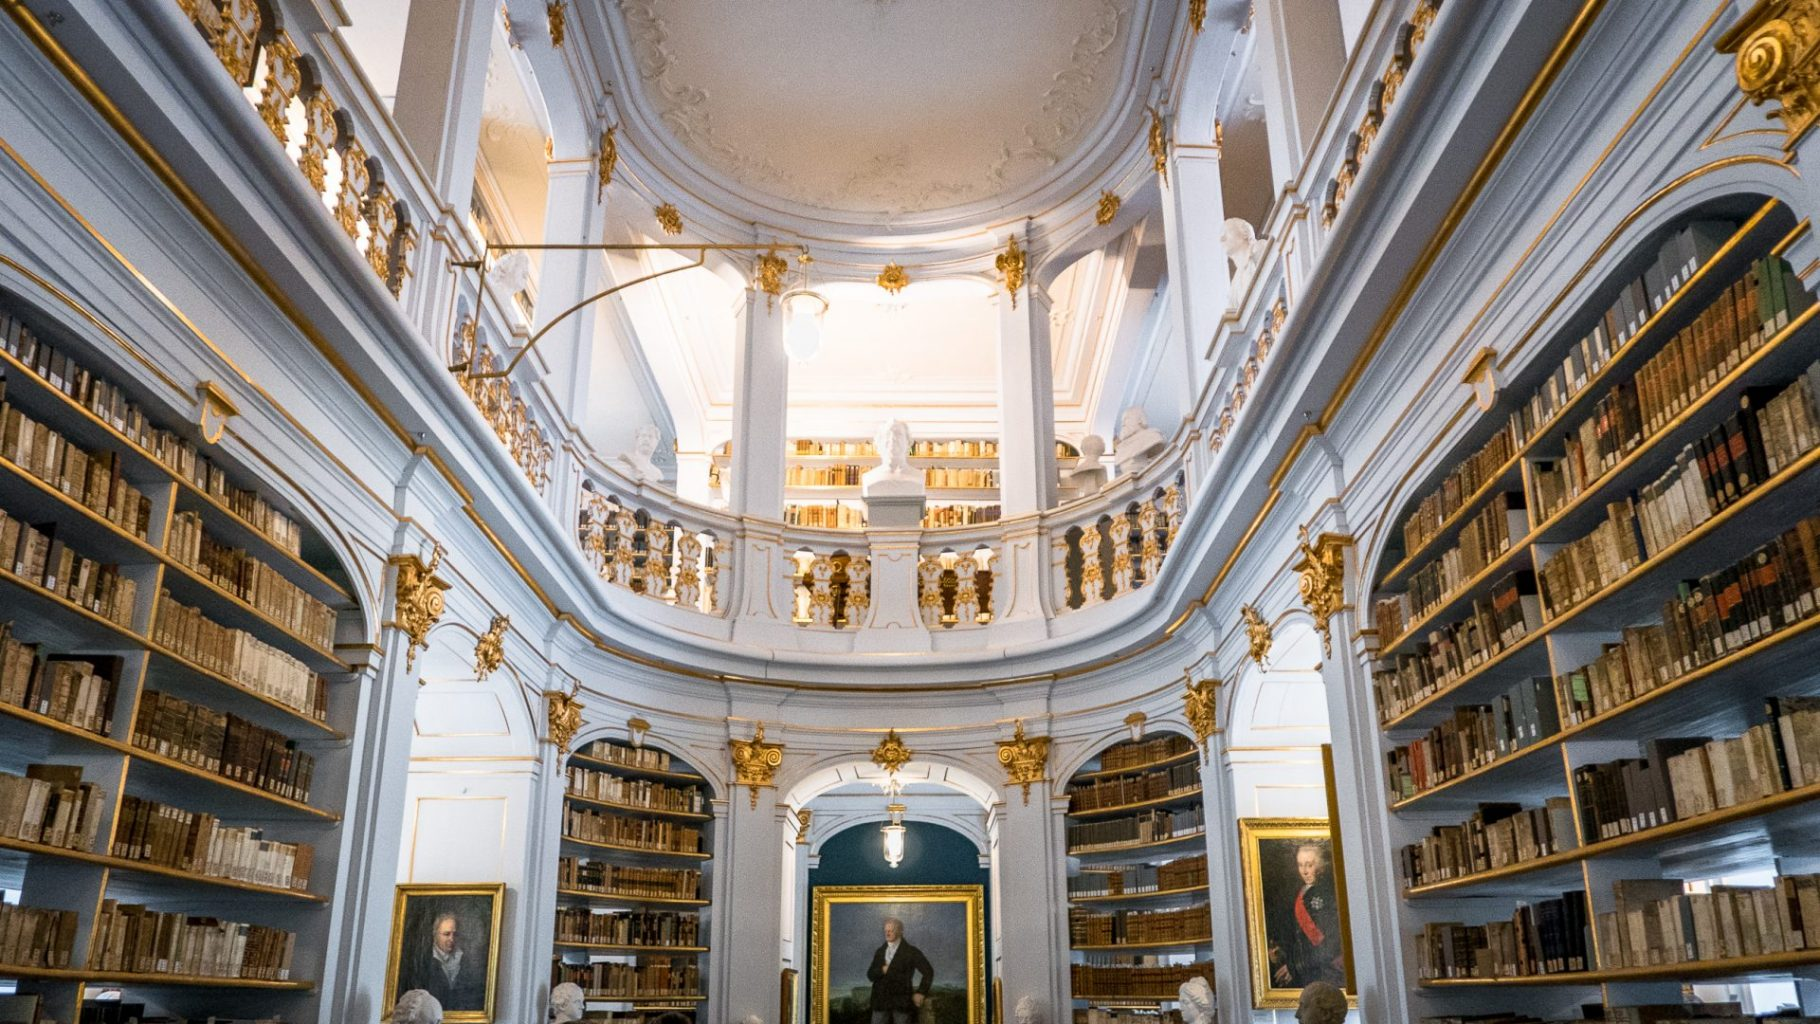 Looking into the Duchess Anna Amalia Library in Weimar, Germany